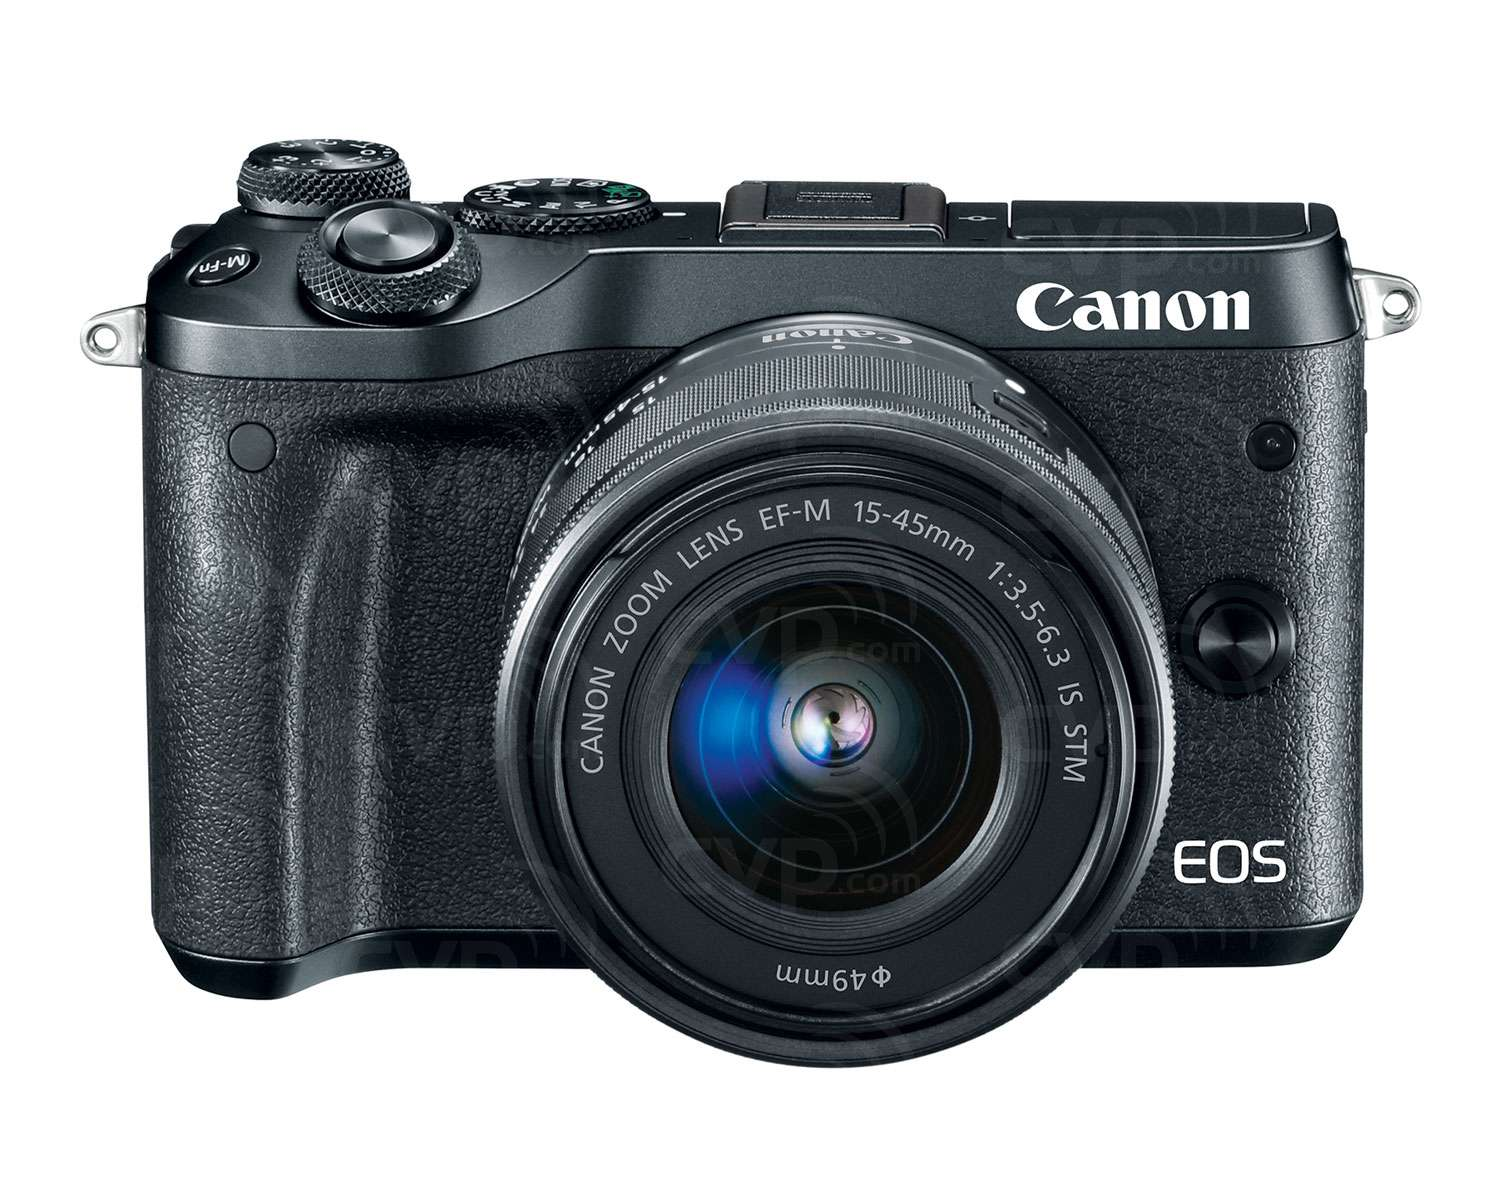 EOS M6 with 15-45mm Lens